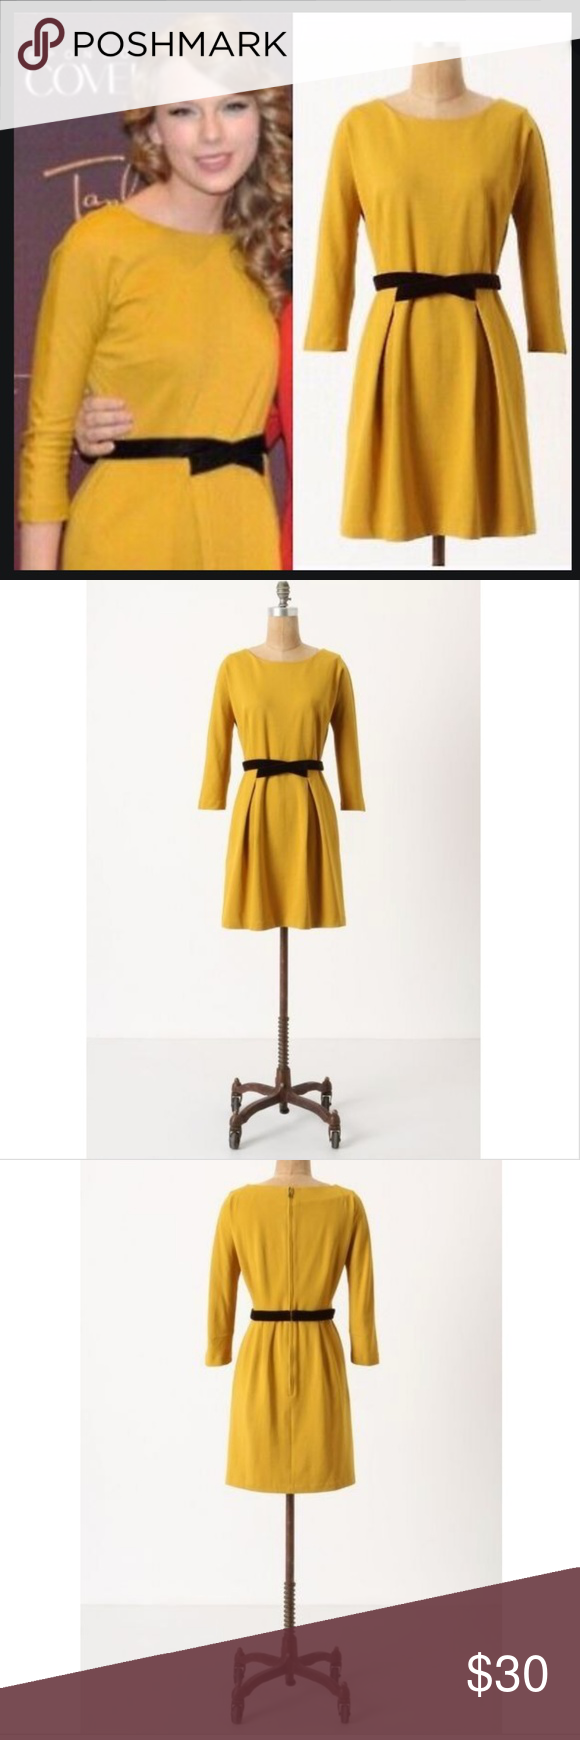 Anthropologie Fluted Ponte Dress Anthropologie Fluted Ponte Dress by Girls From Savoy. This vintage-inspired dress in a muted mustard/goldenrod yellow has a crossed velvet waist sash, an exposed back zip, 3/4 sleeves and pockets. It's a comfy stretch-infused material and can be dressed up or down. As worn by Taylor Swift. Good condition. Anthropologie Dresses Midi